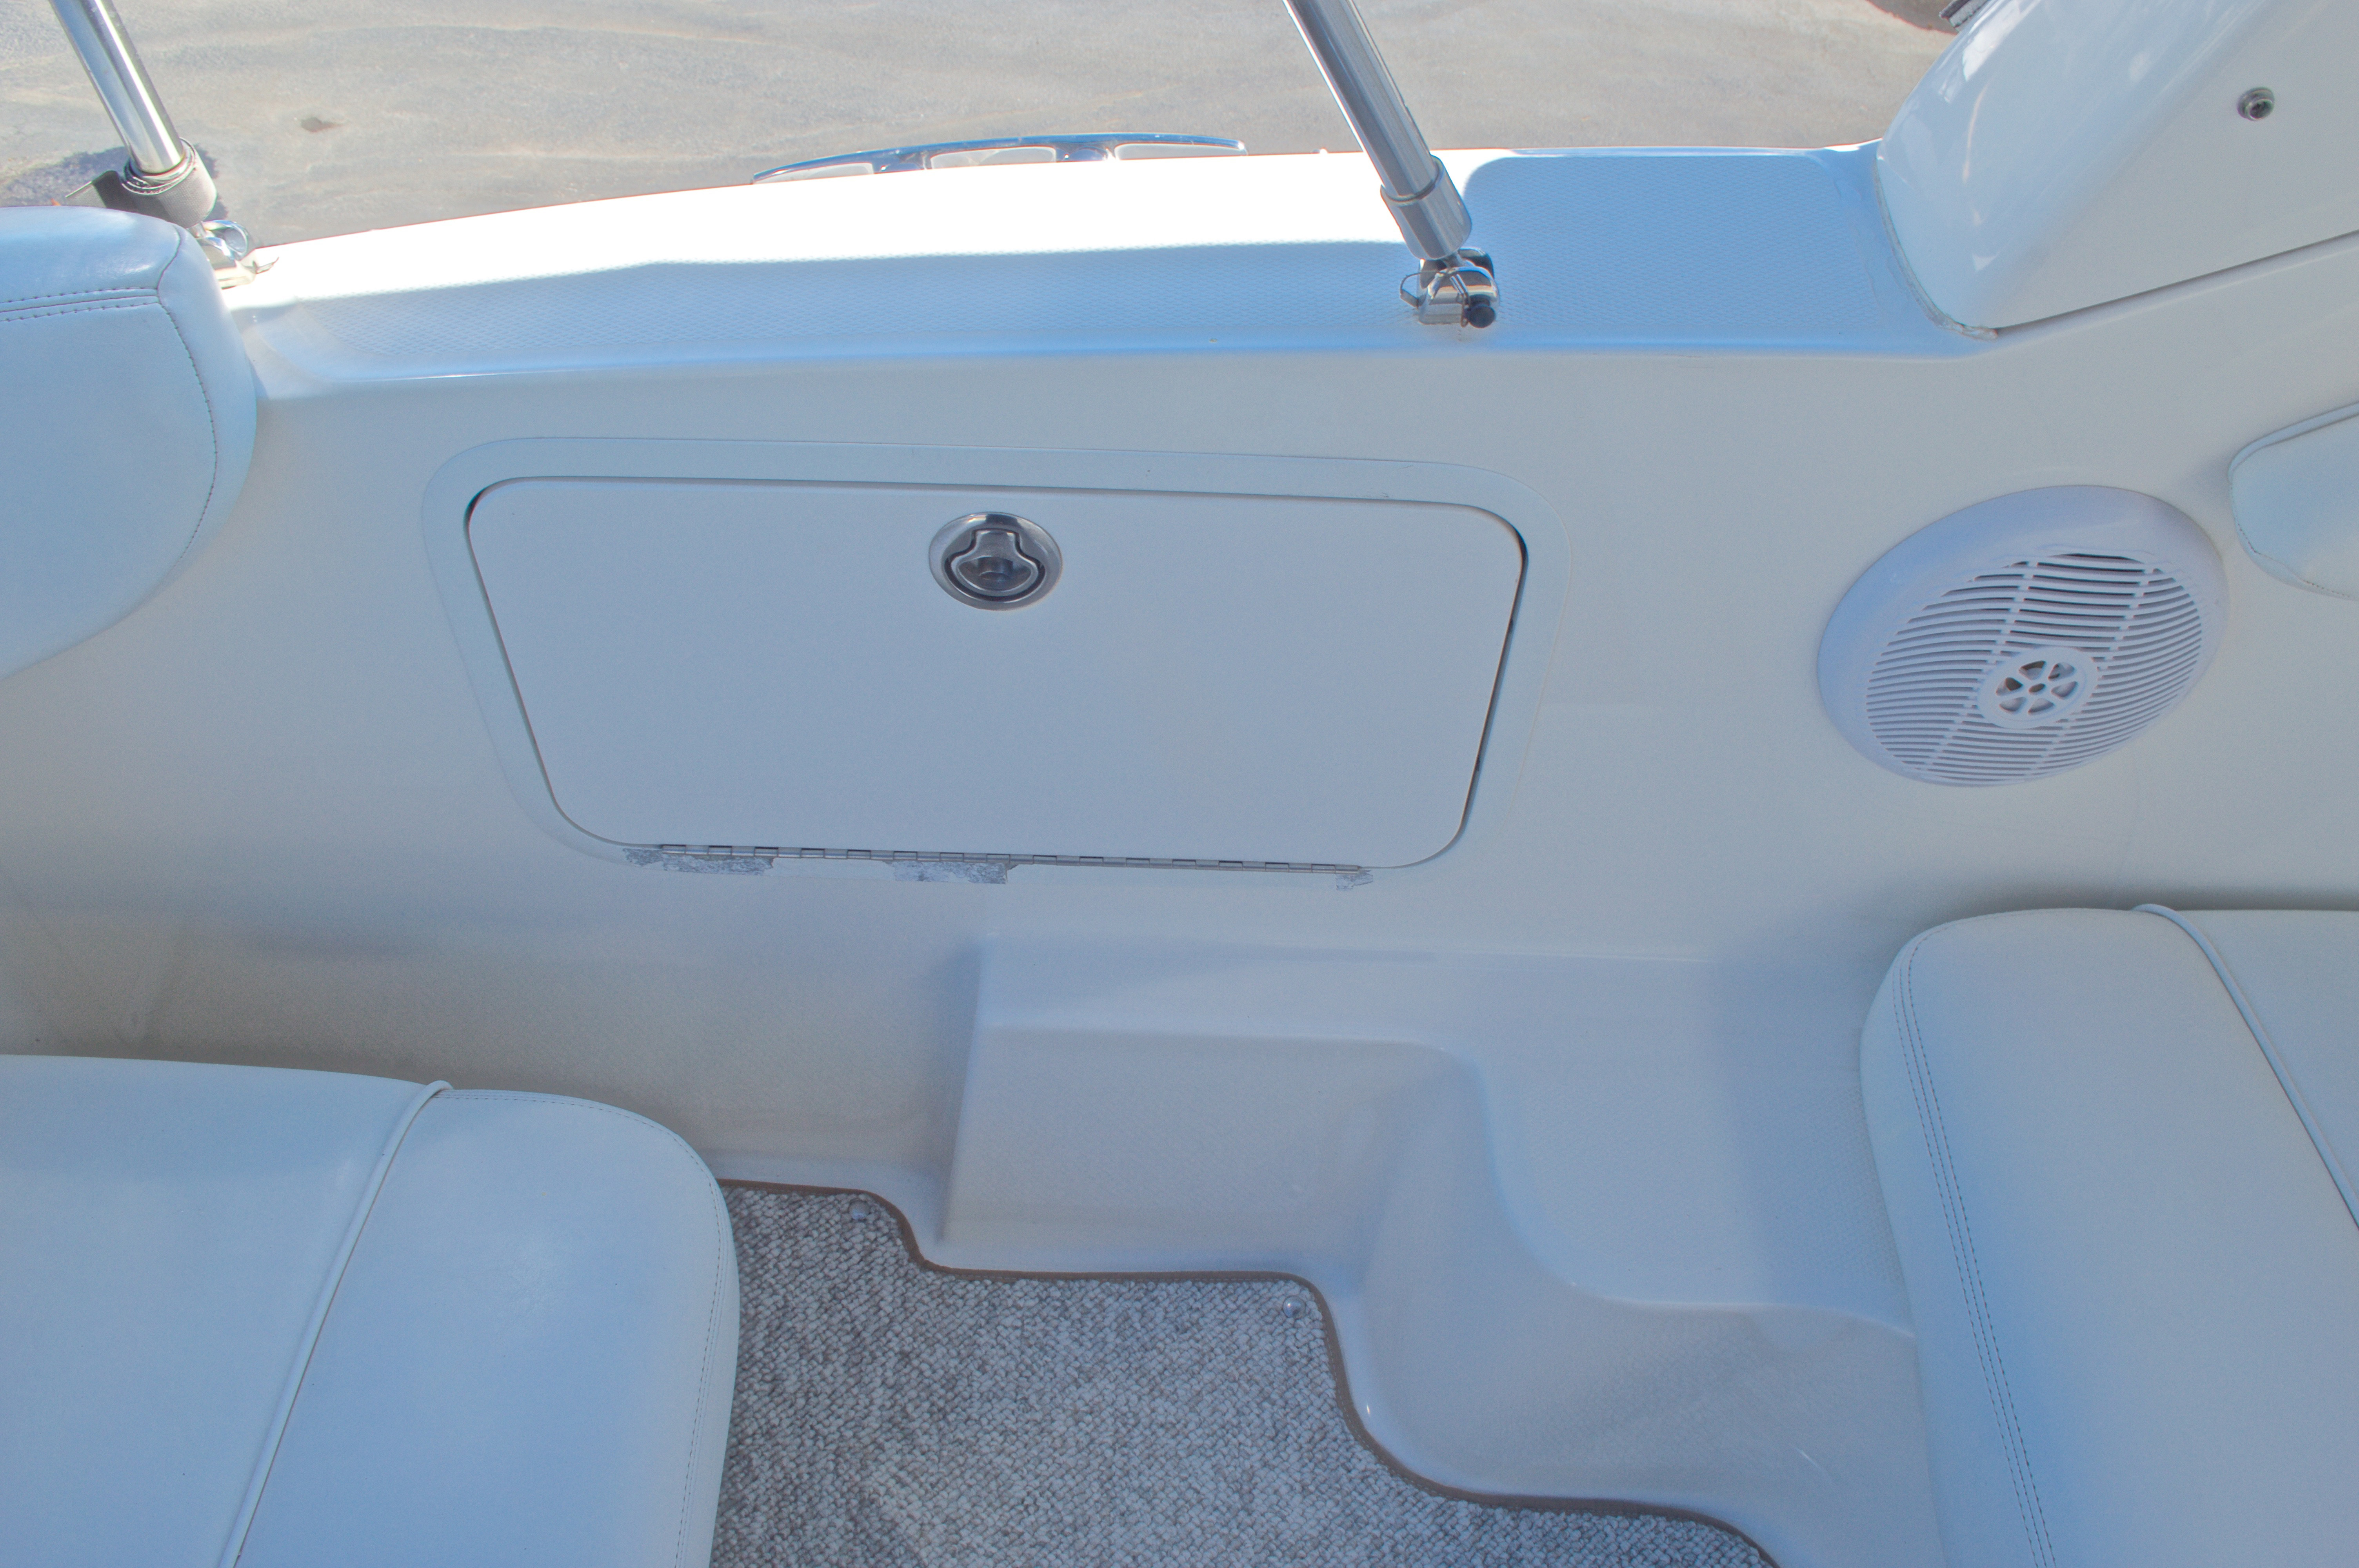 Thumbnail 19 for Used 2005 Sea Ray 280 Sundancer boat for sale in West Palm Beach, FL